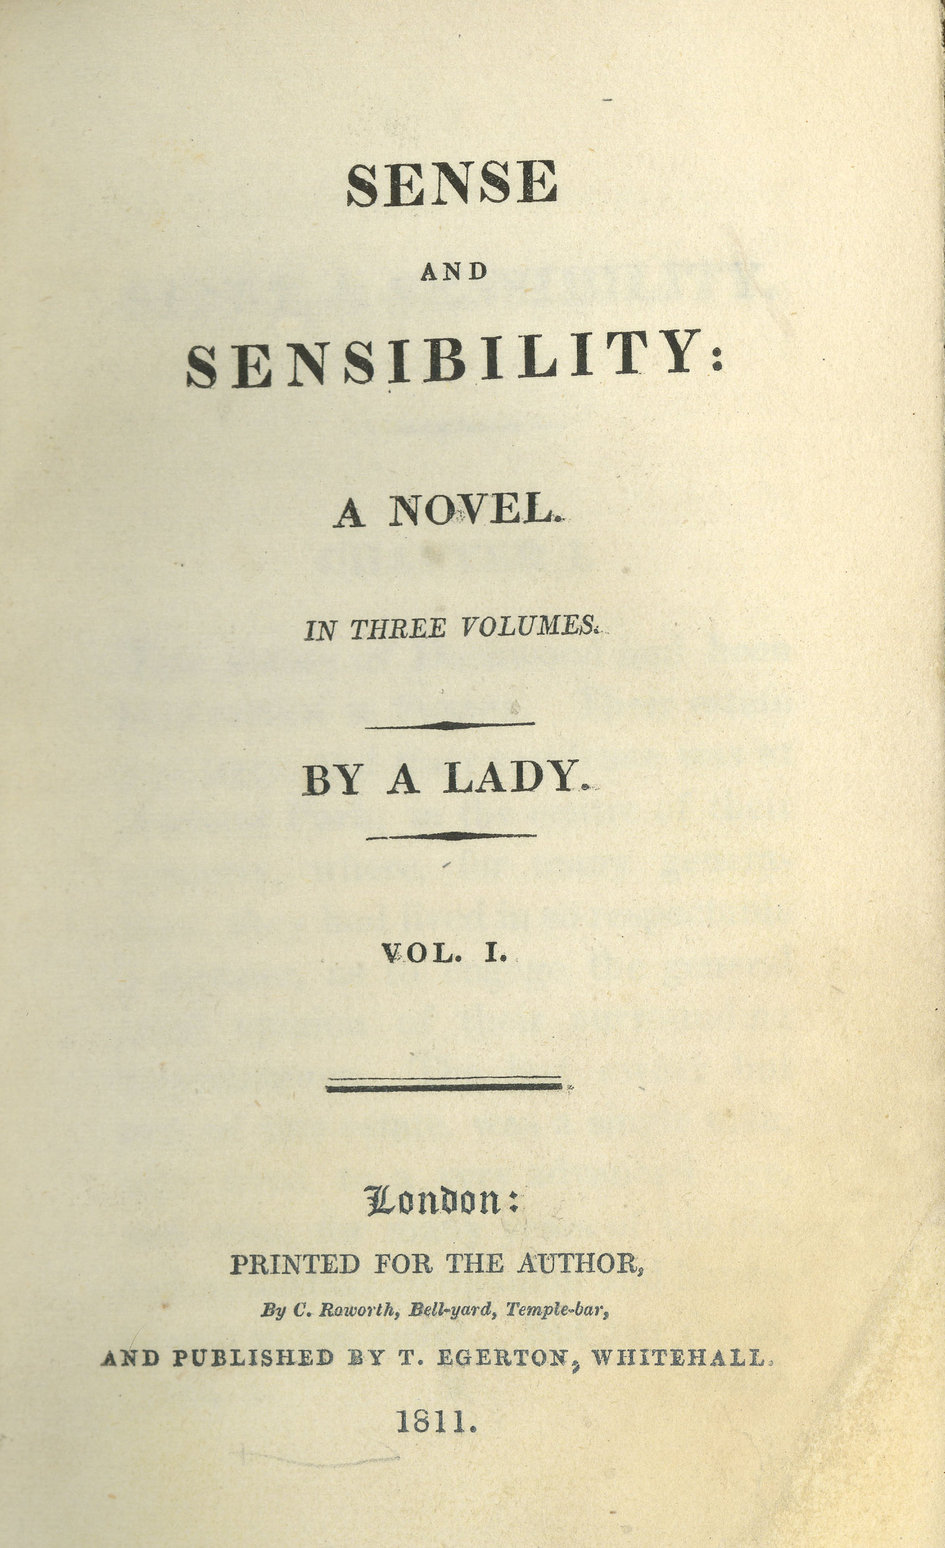 Title page from the first edition of Jane Austen's novel Sense and Sensibility